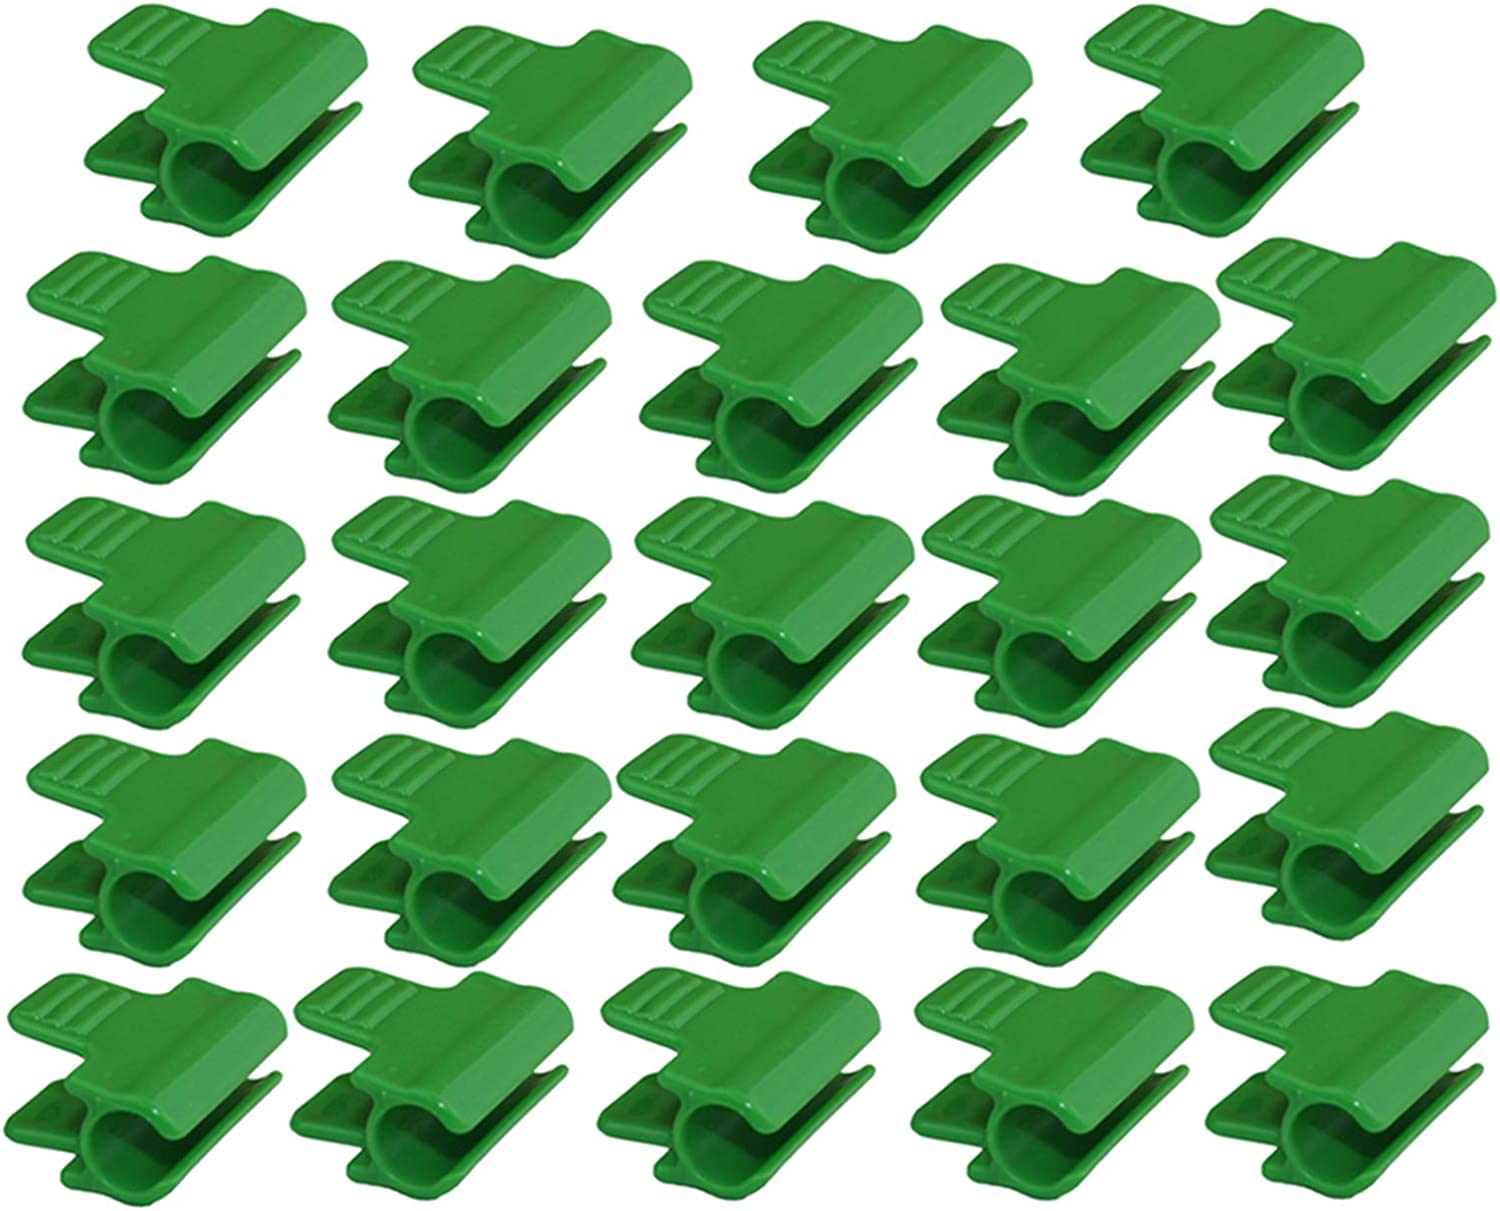 Firlar 24Pcs Pipe Clamps, Greenhouse Clamps Clips Row Cover Netting Tunnel Hoop Clips for 16mm/0.63inch Plant Stakes, Shed Film Shading Net Rod Clip for Greenhouses Frame Shelters